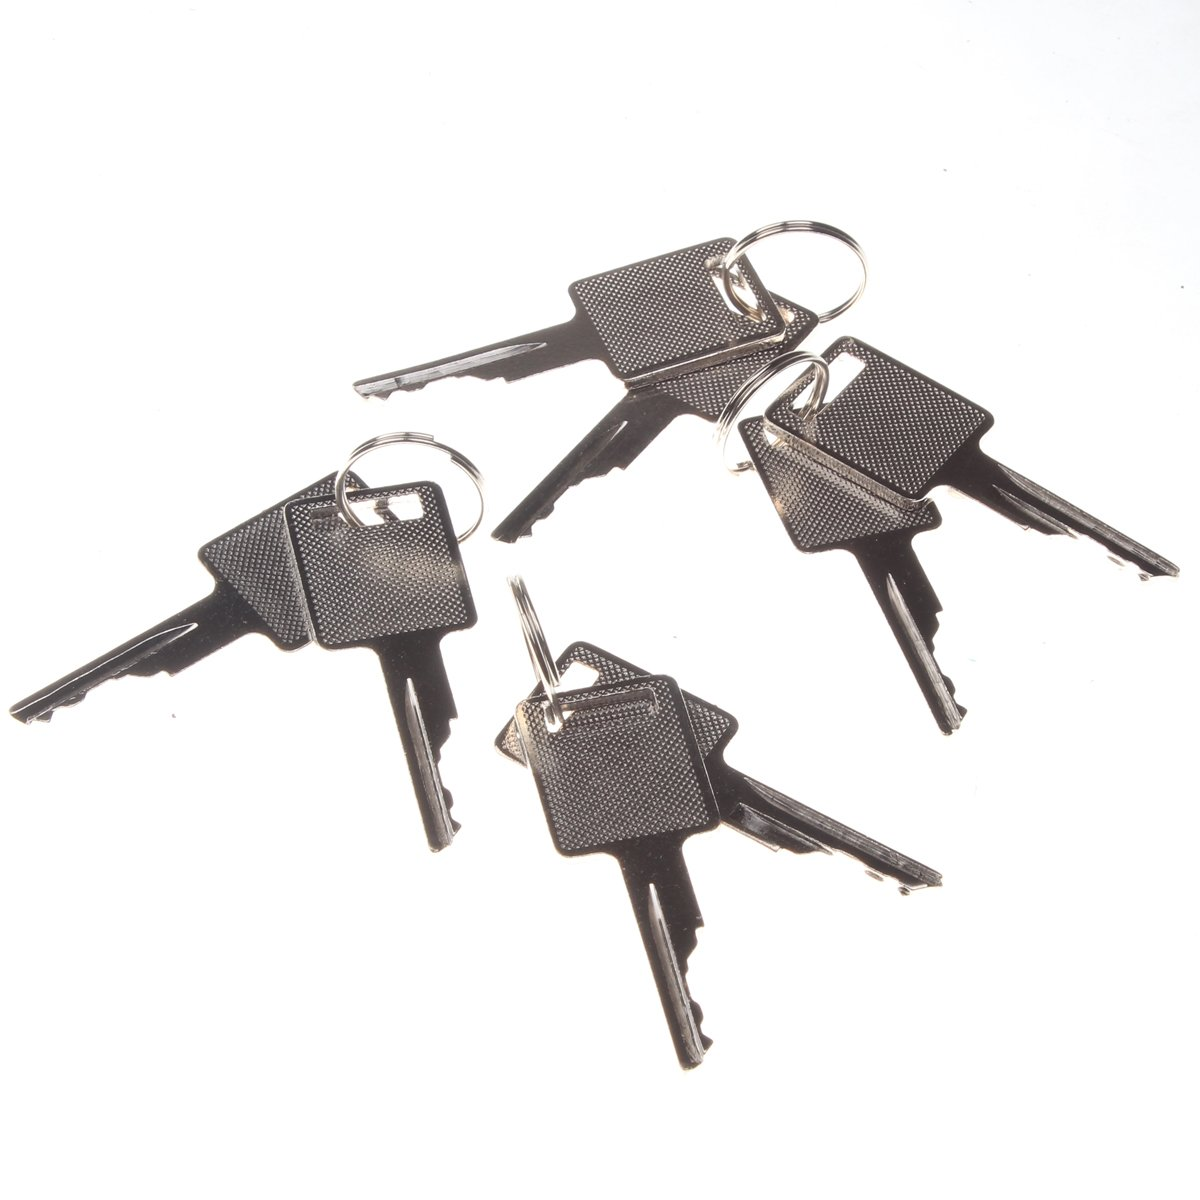 Friday Part Ignition Key 6693241 for Bobcat 751 753 763 773 863 873 883 963 Skid Steer Loader(4 Pairs)